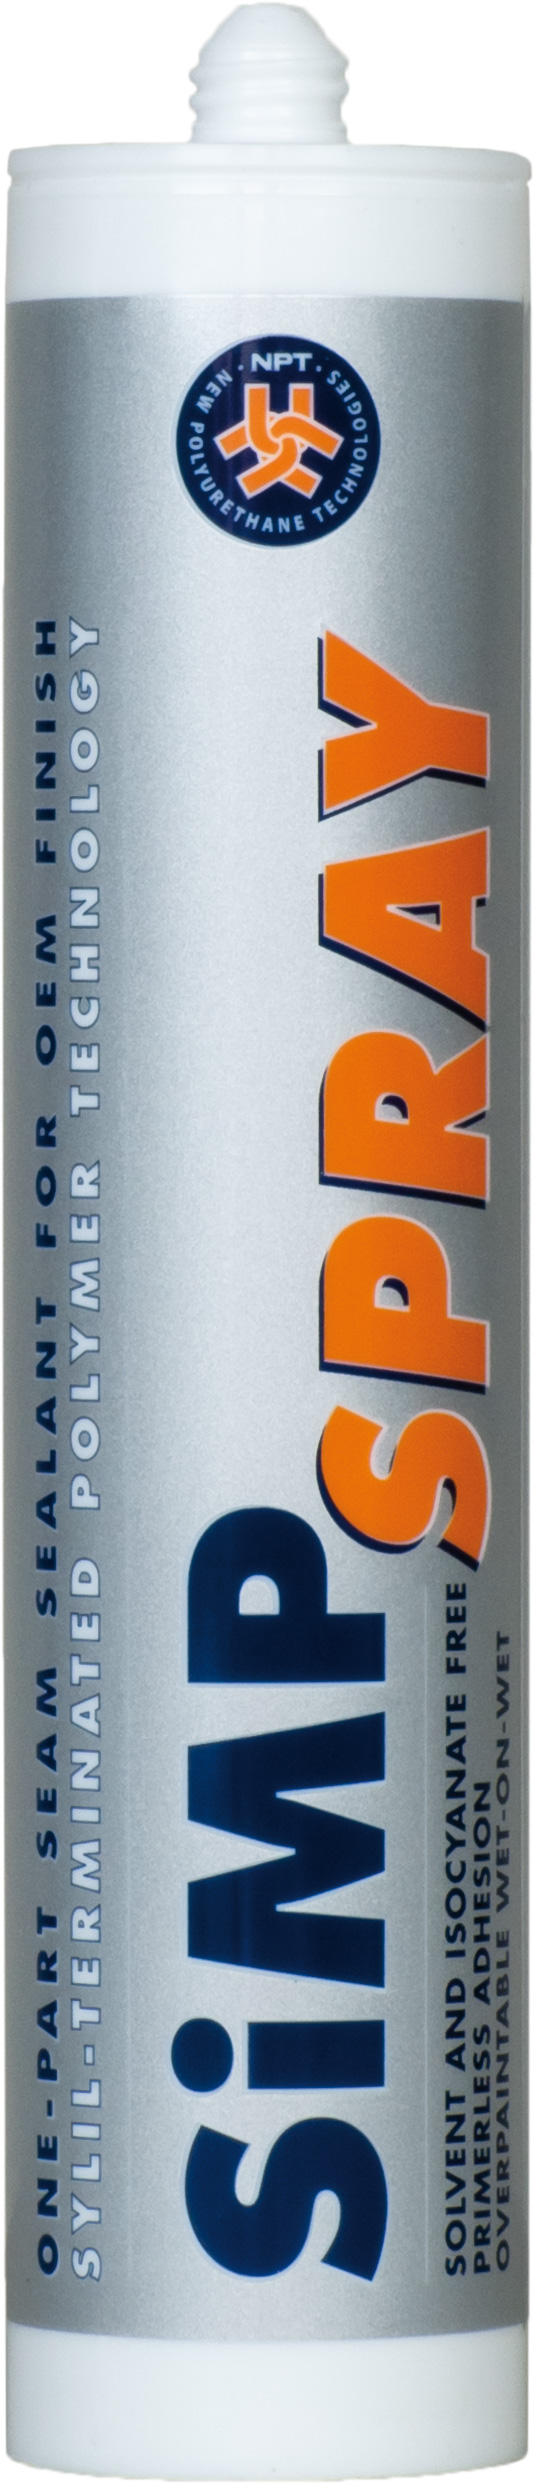 polymer adhesives, One-part hybrid polymer sprayable adhesive and sealant, SIMP SPRAY